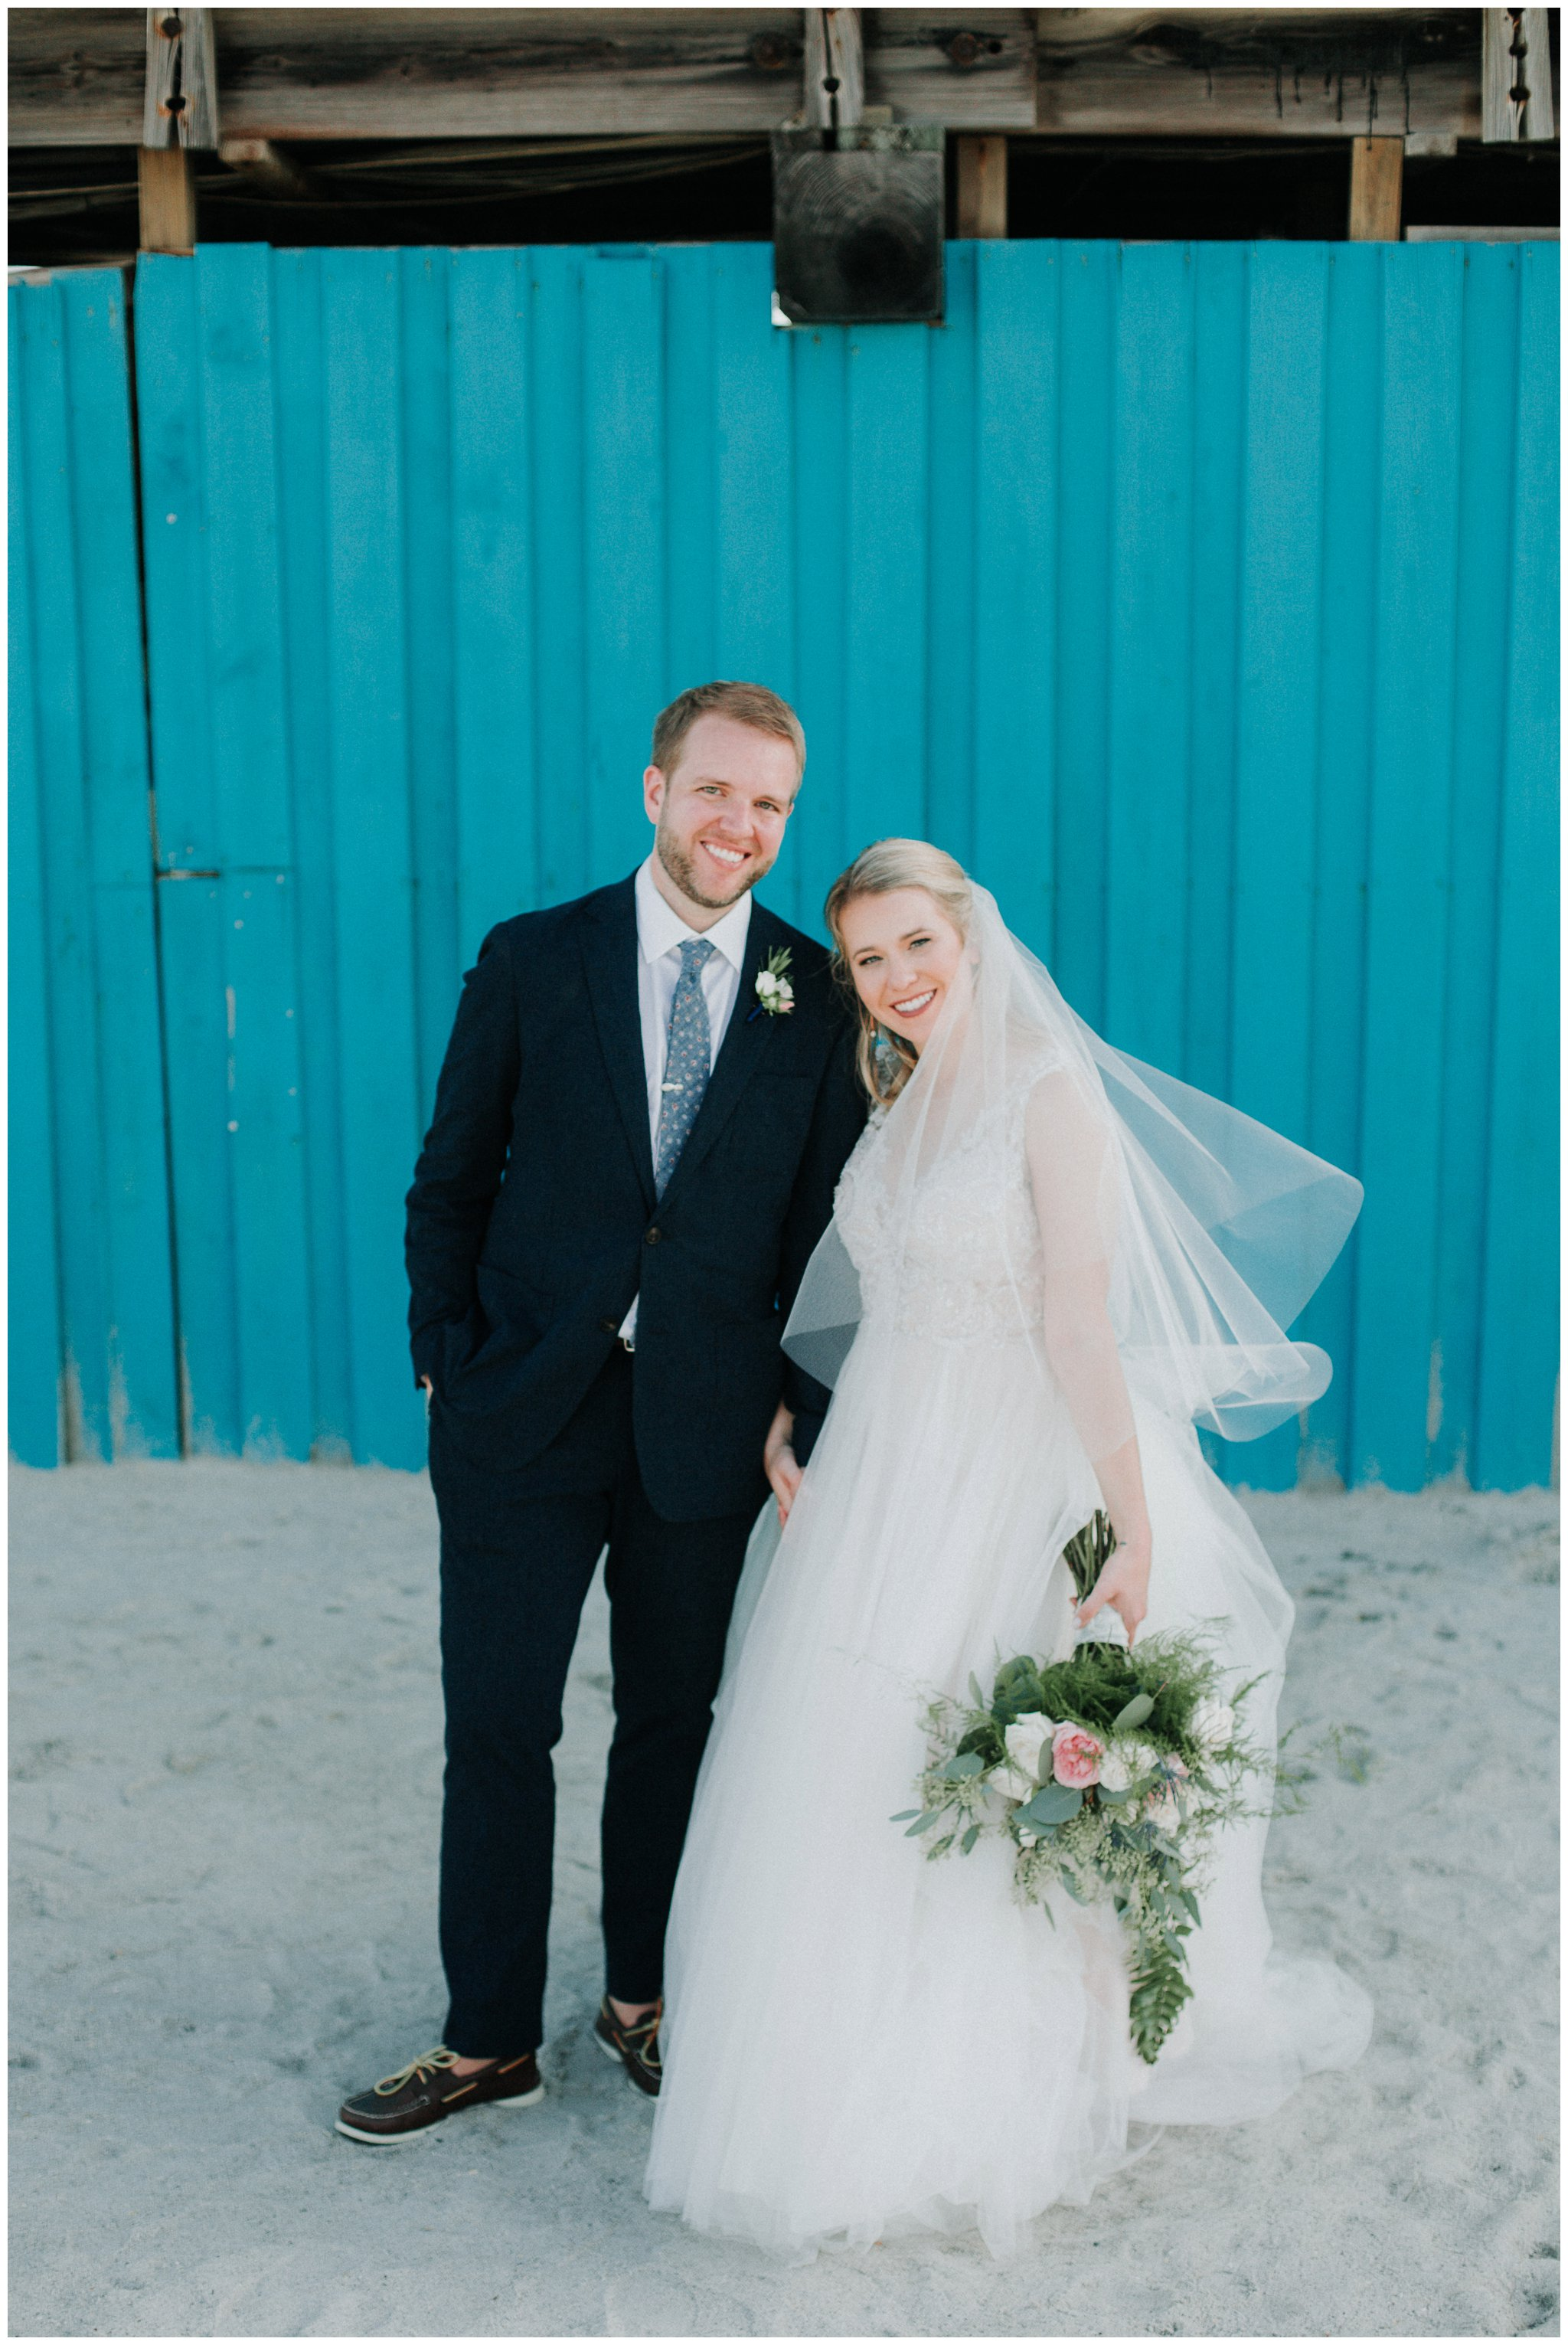 kaley and kevin-coco beach pier wedding-kimberly smith photography_0050.jpg